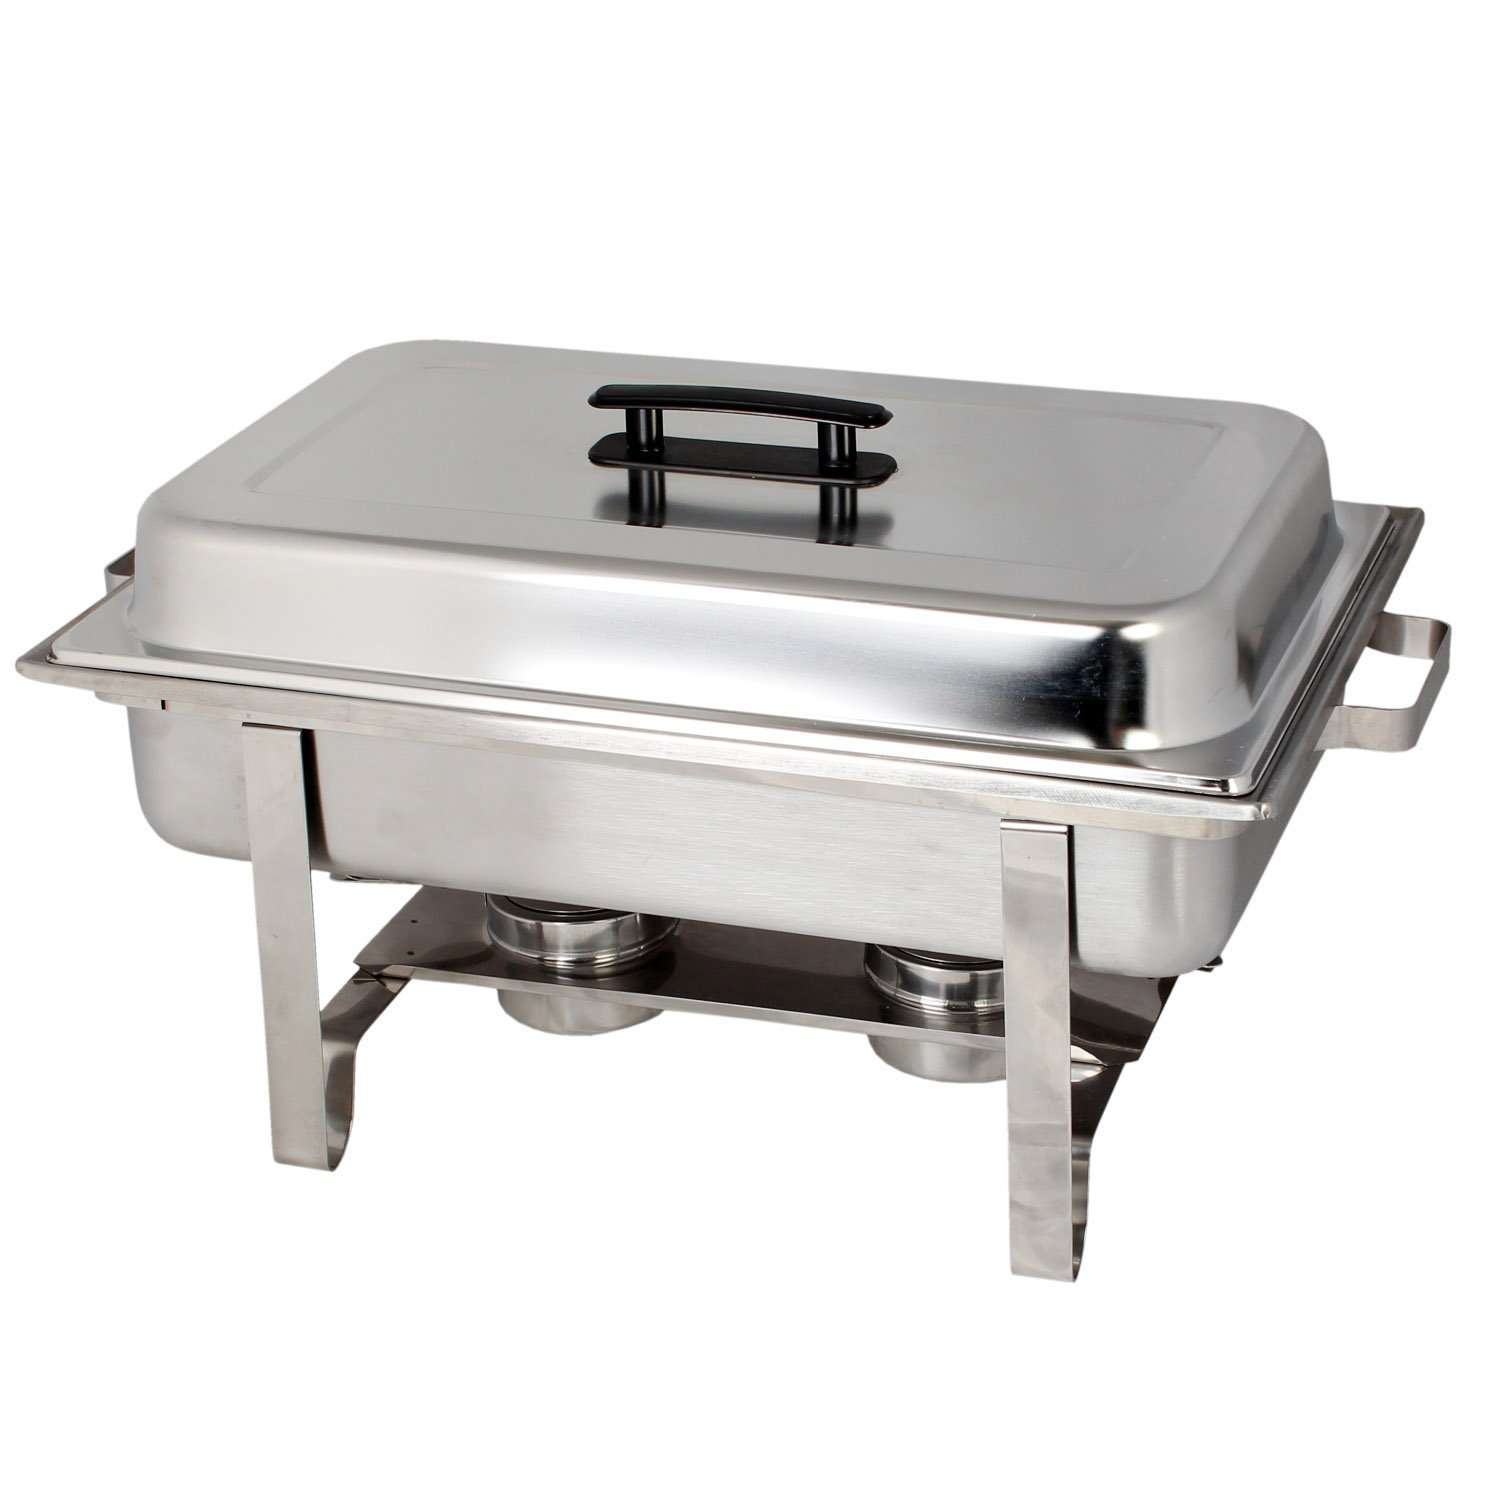 Thunder Group 8 Quart Oblong Stainless Steel Chafer Warmers Full Size Chafer includes 2 Free Chafing Fuel Gel Cans